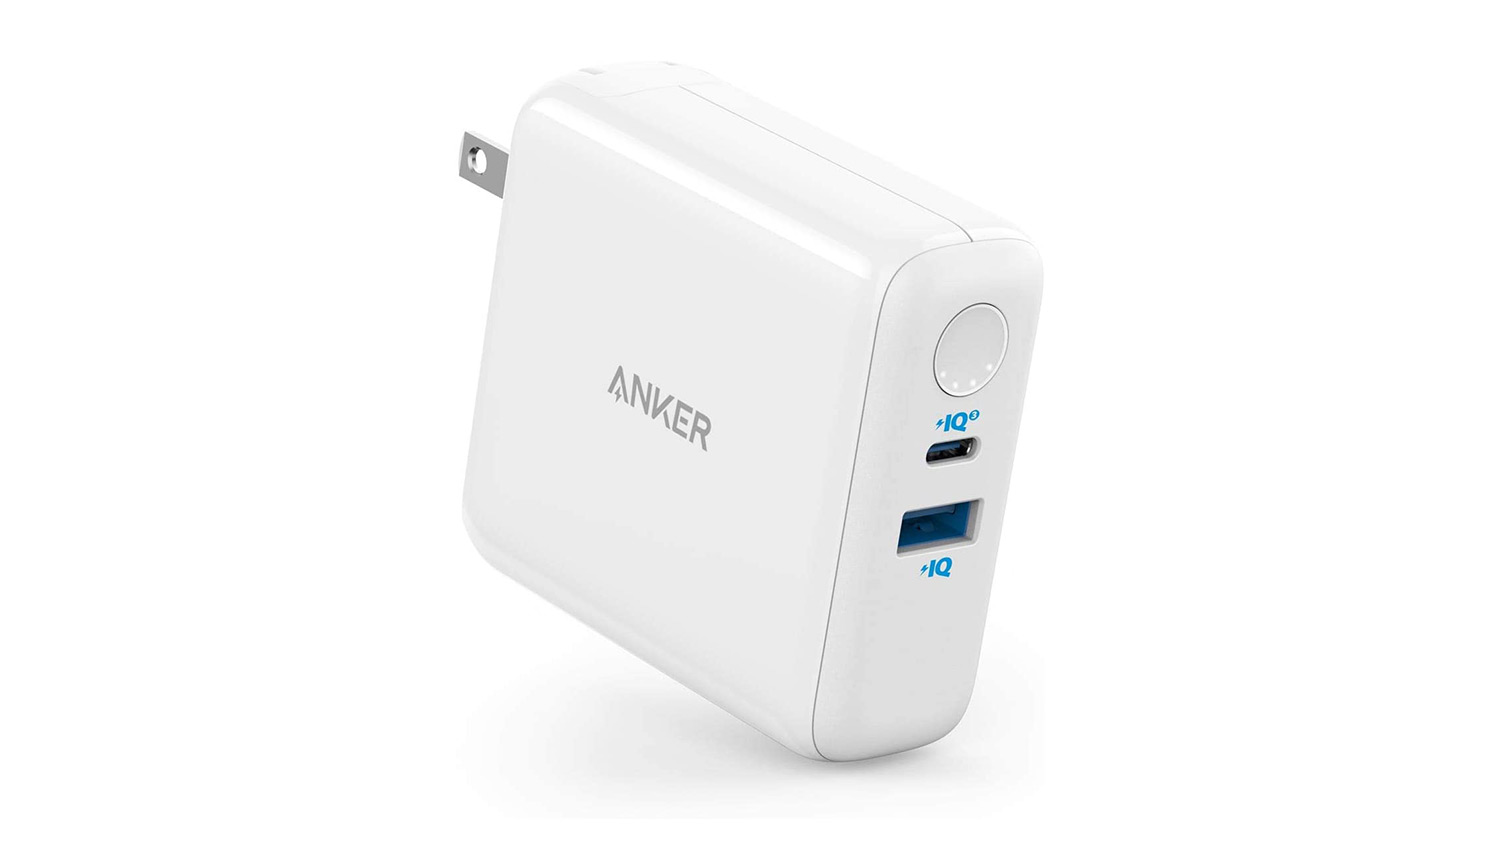 Anker PowerCore III Fusion 5000登場。人気の充電器兼モバイルバッテリーがUSB PDに対応